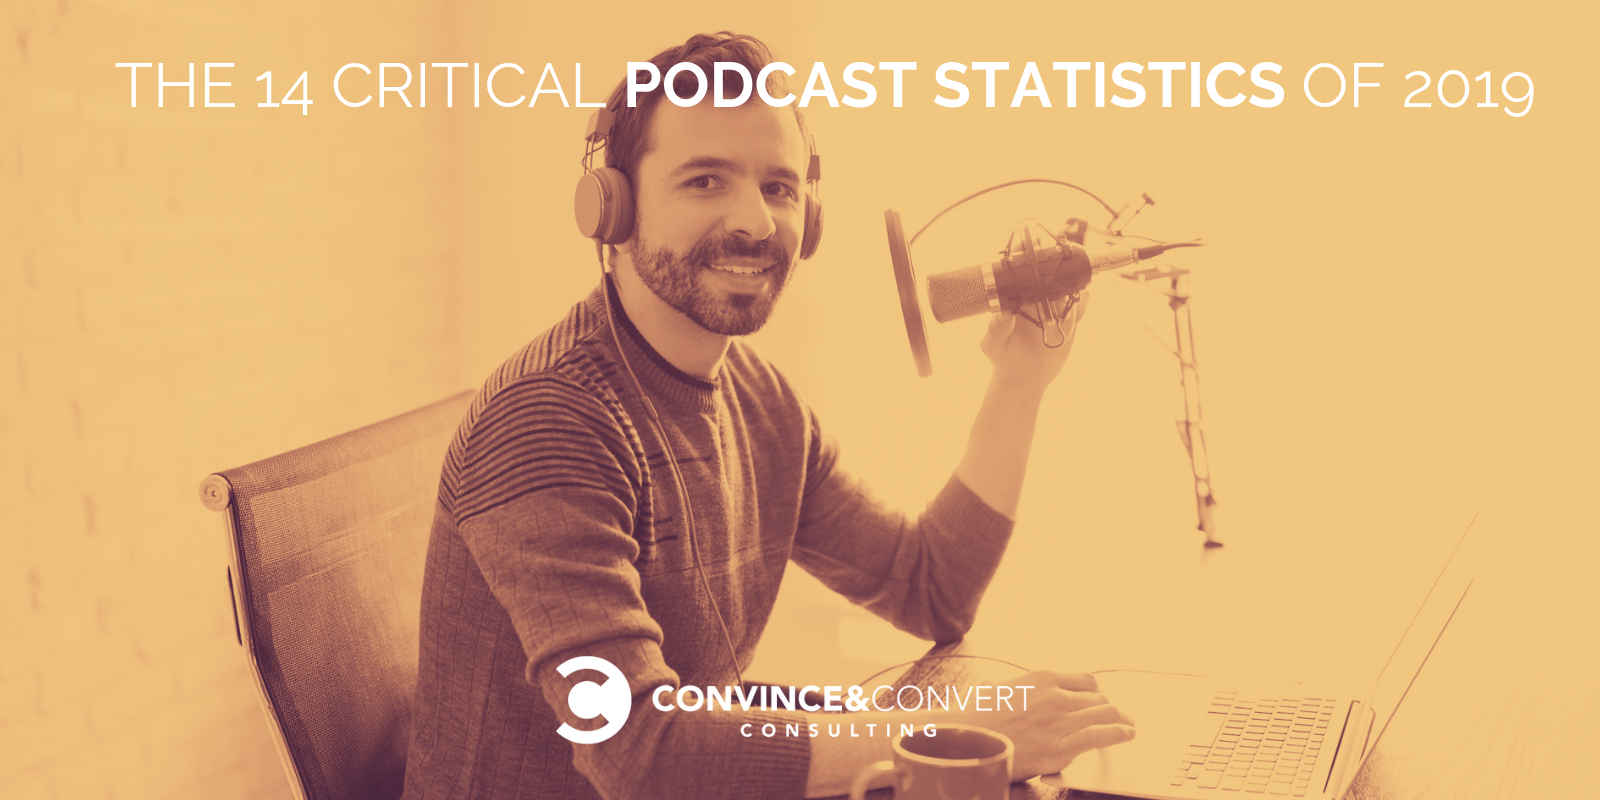 The 14 Critical Podcast Statistics of 2019